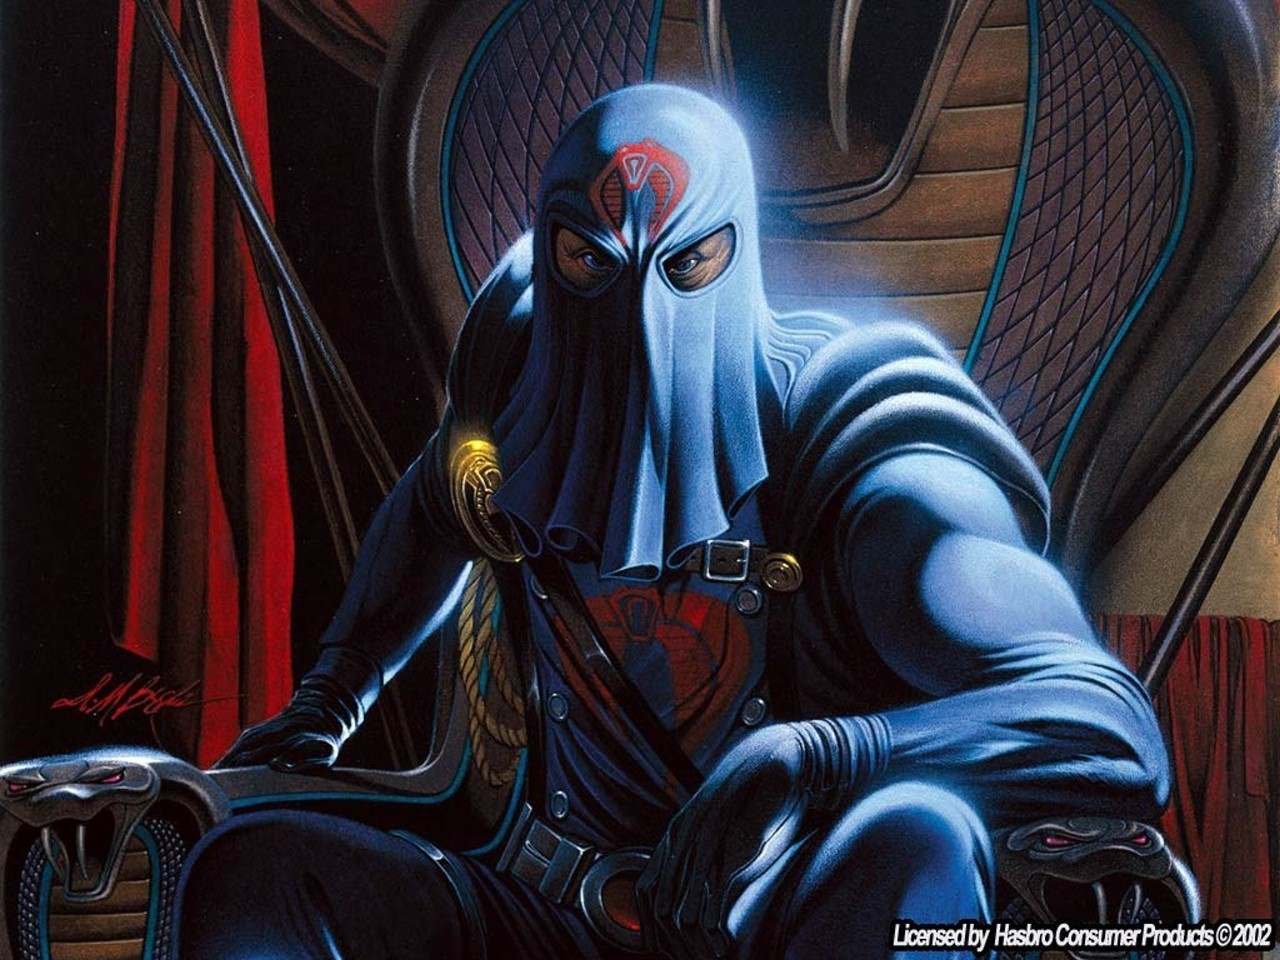 Joe images Cobra Commander wallpaper photos 5206598 1280x960